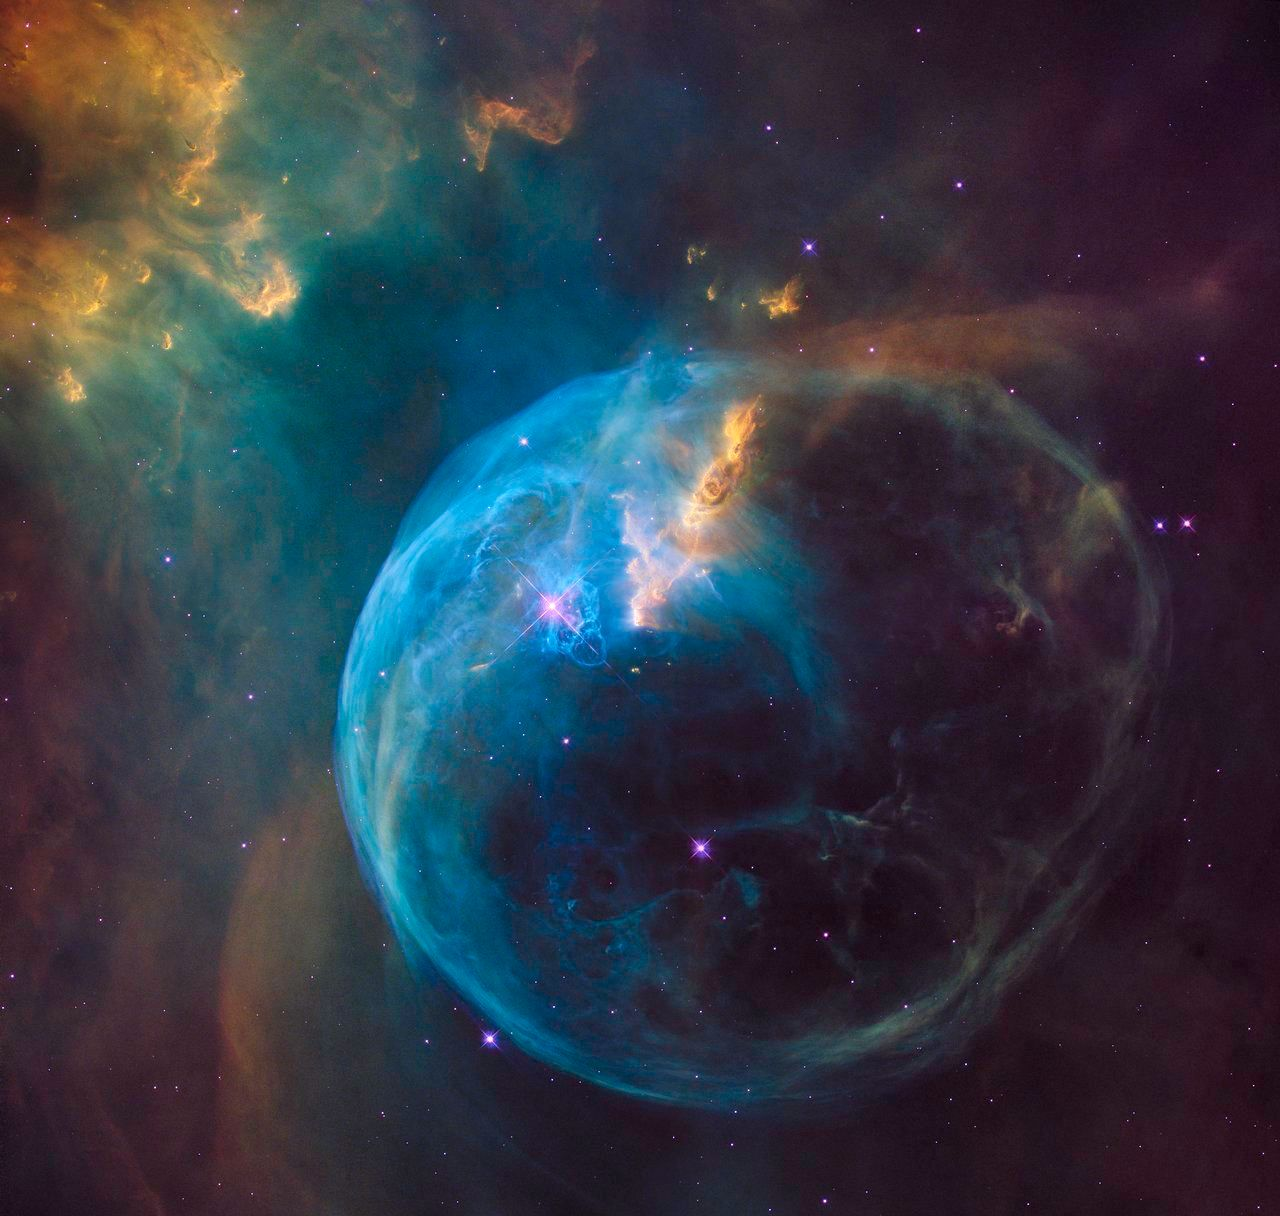 The Bubble Nebula, also known as NGC 7653, is an emission nebula located 8 000 light-years away. This stunning new image was observed by the NASA/ESA Hubble Space Telescope to celebrate its 26th year in space.